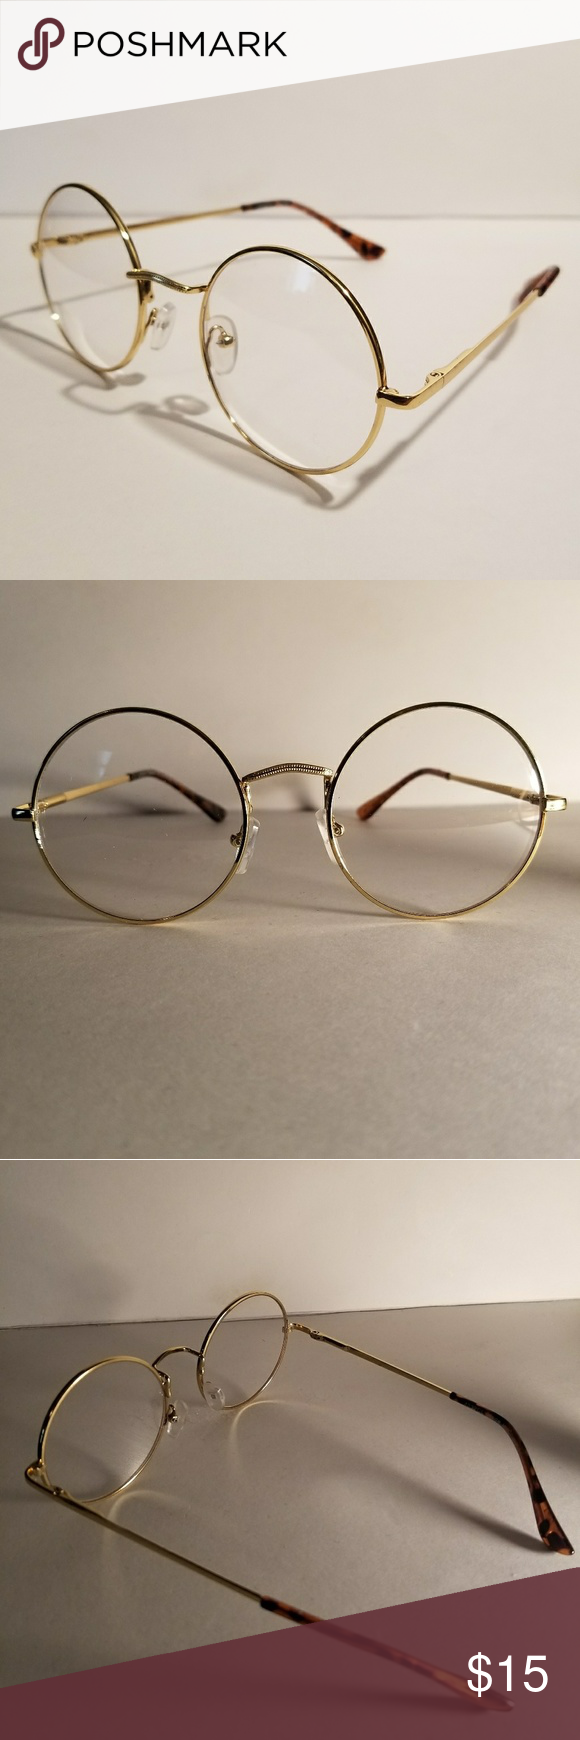 Gold Retro Round Glasses | Cartier, Round glass and Rounding